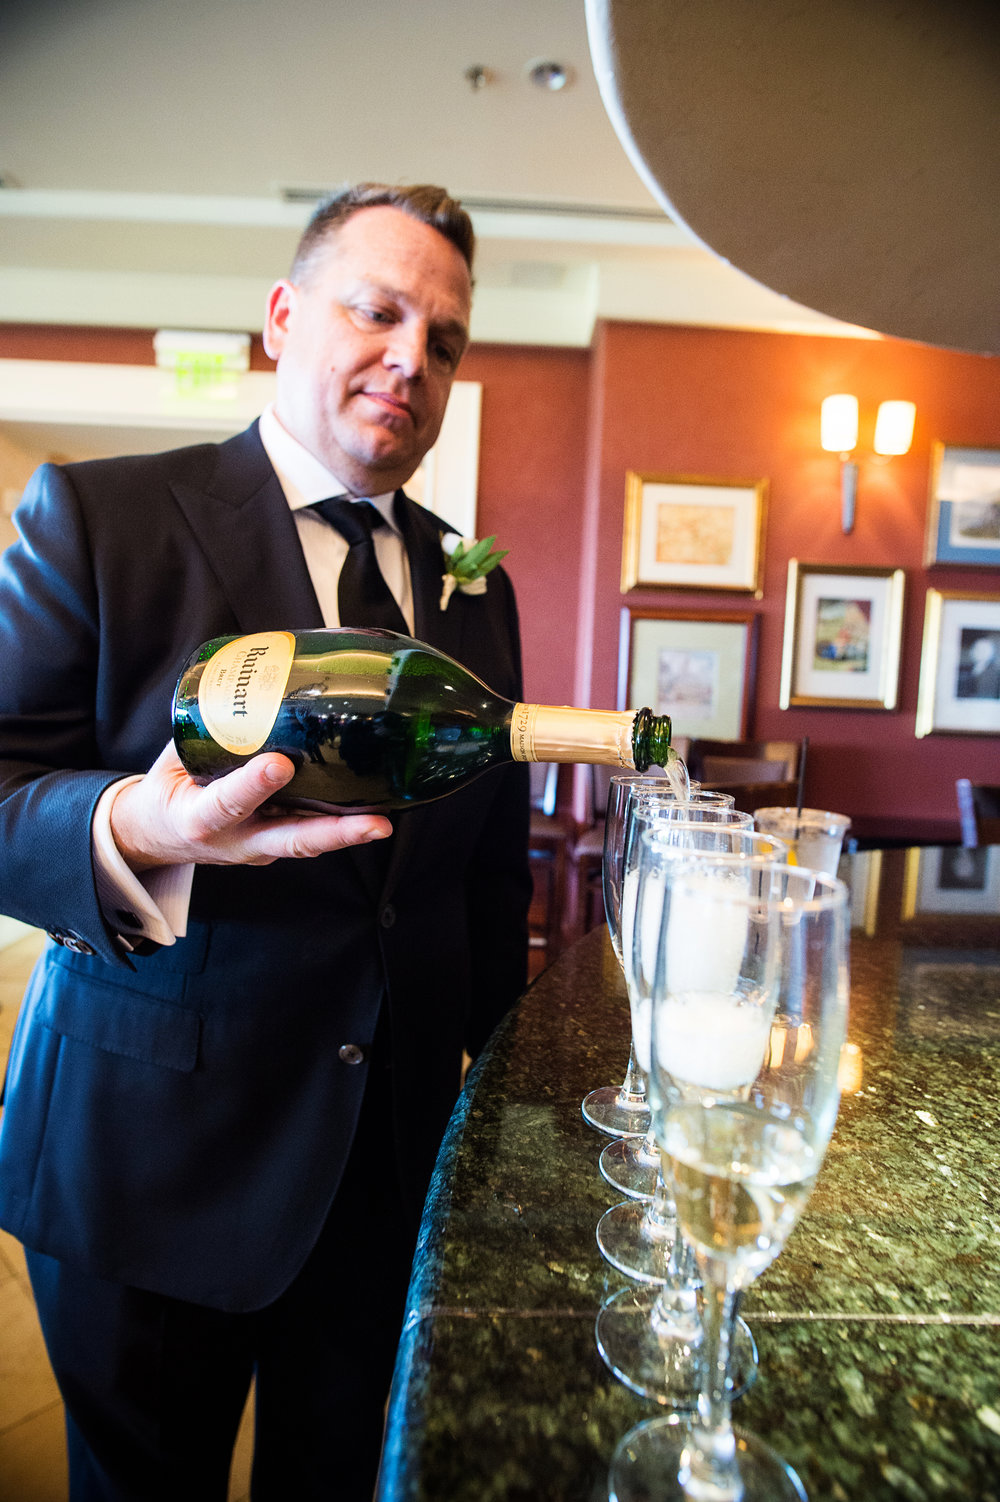 The groom pours off some bubbles before the first look. Las Vegas Wedding Planner Andrea Eppolito.  Photo by Studio JK.